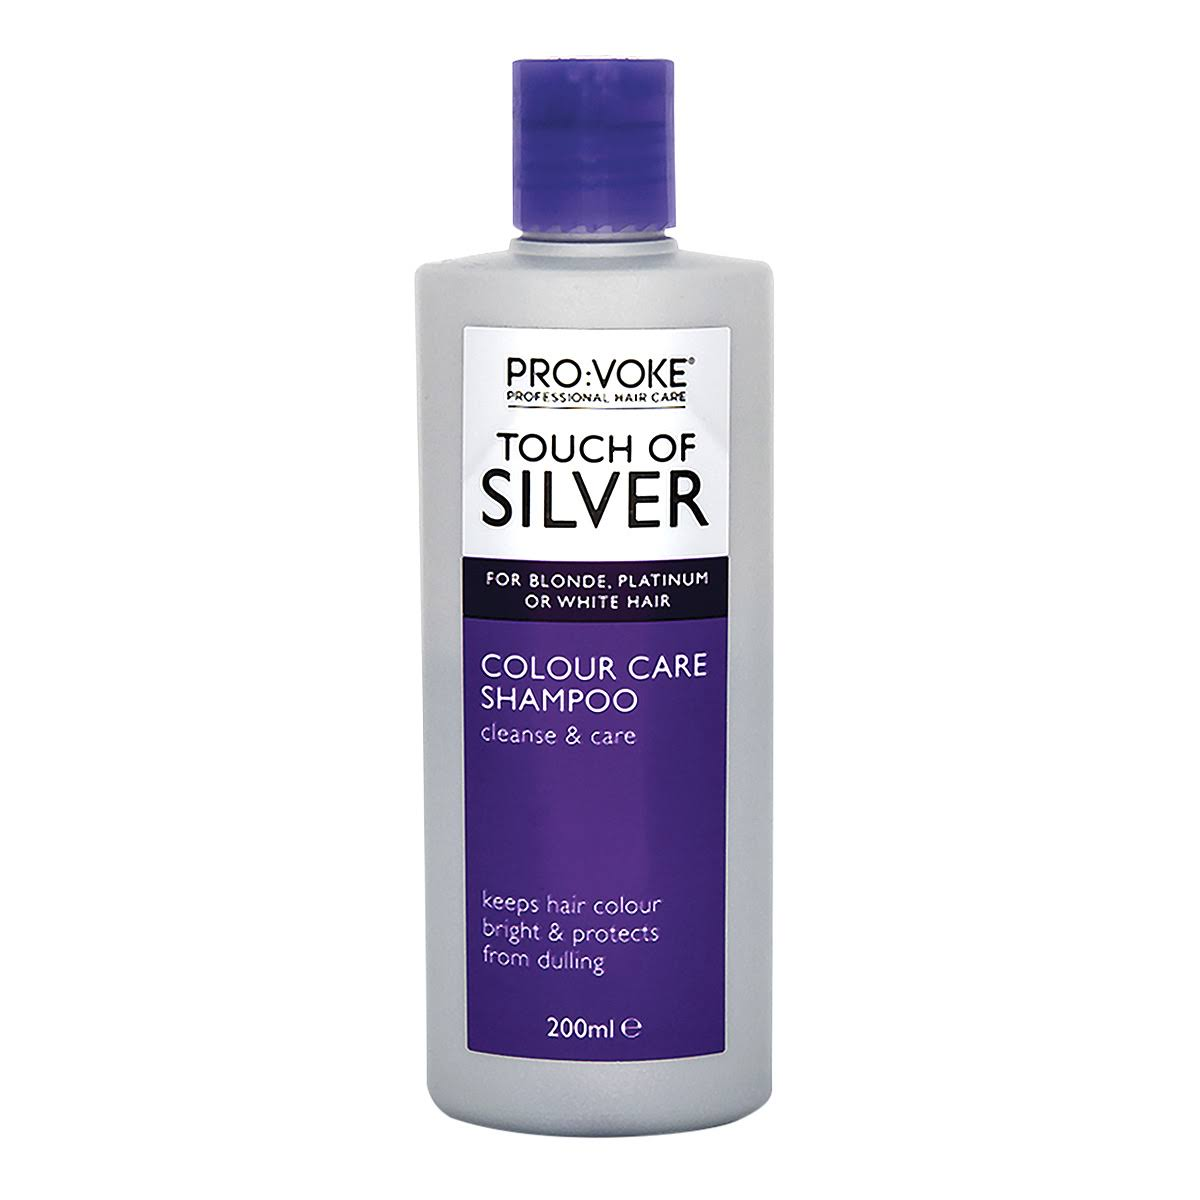 Pro:Voke Touch Of Silver Colour Care Shampoo - 200ml